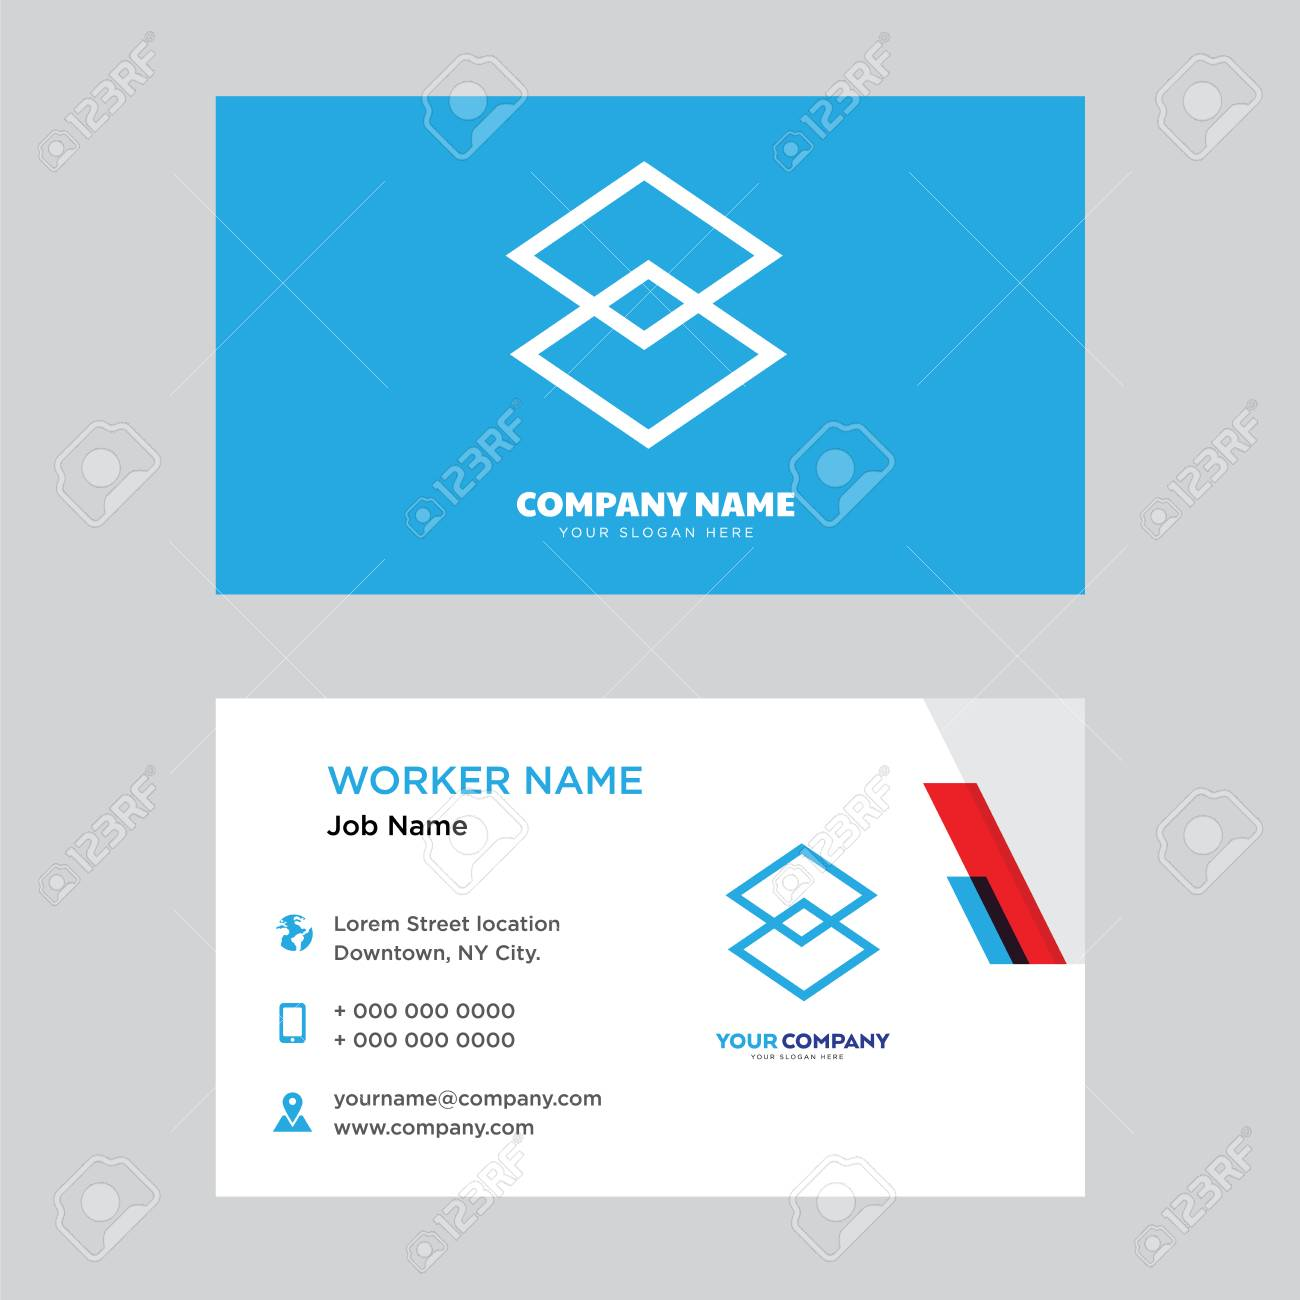 Business Card Dimensions Yeter Wpart Co